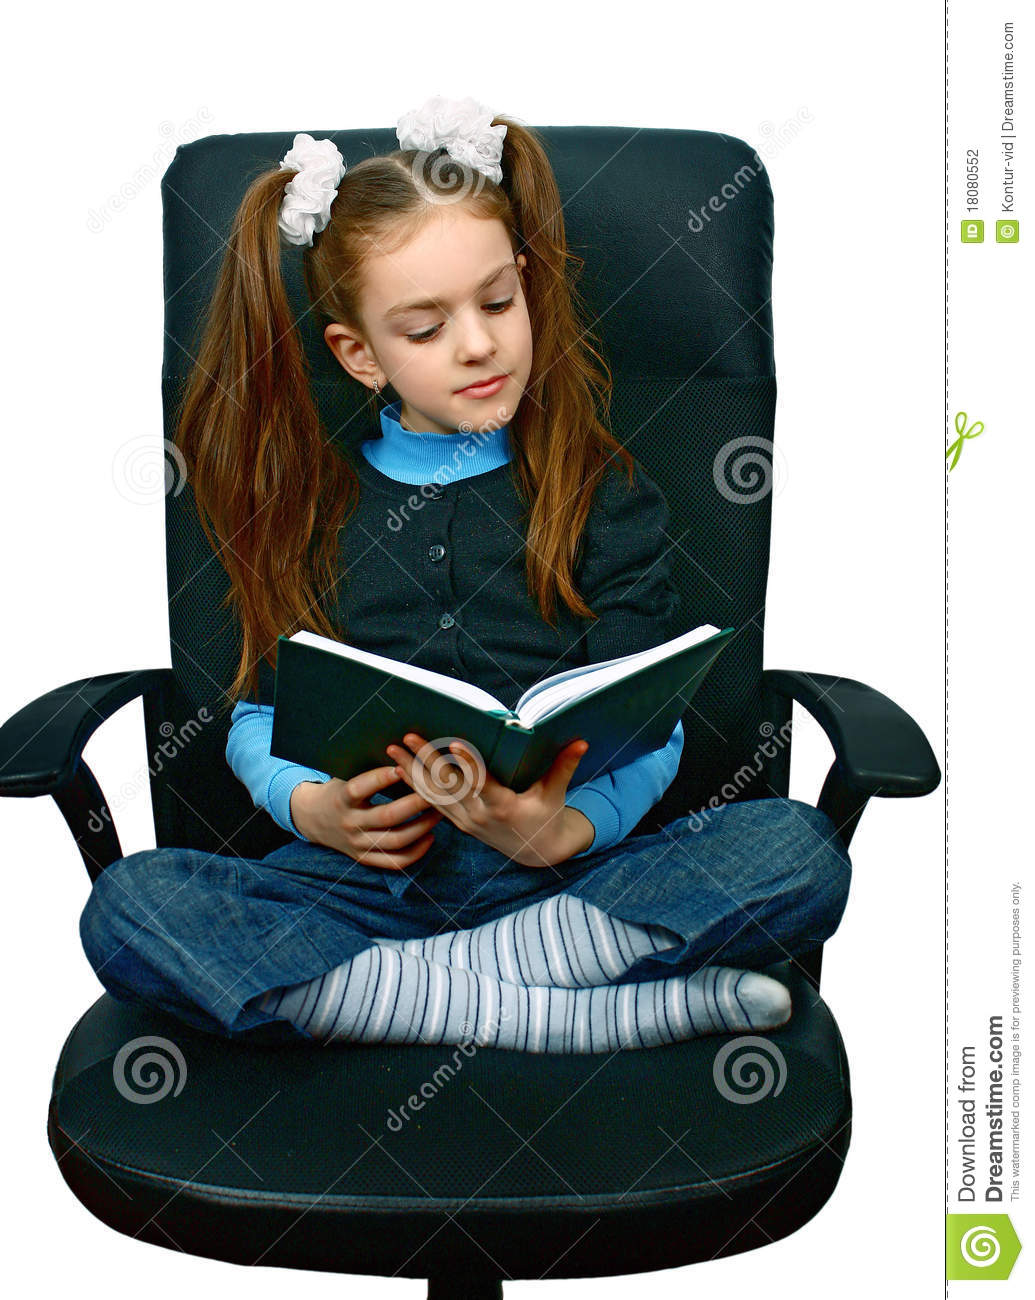 Cute Reading Chairs Girl Reading A Book In Chair Stock Photo Image Of Black